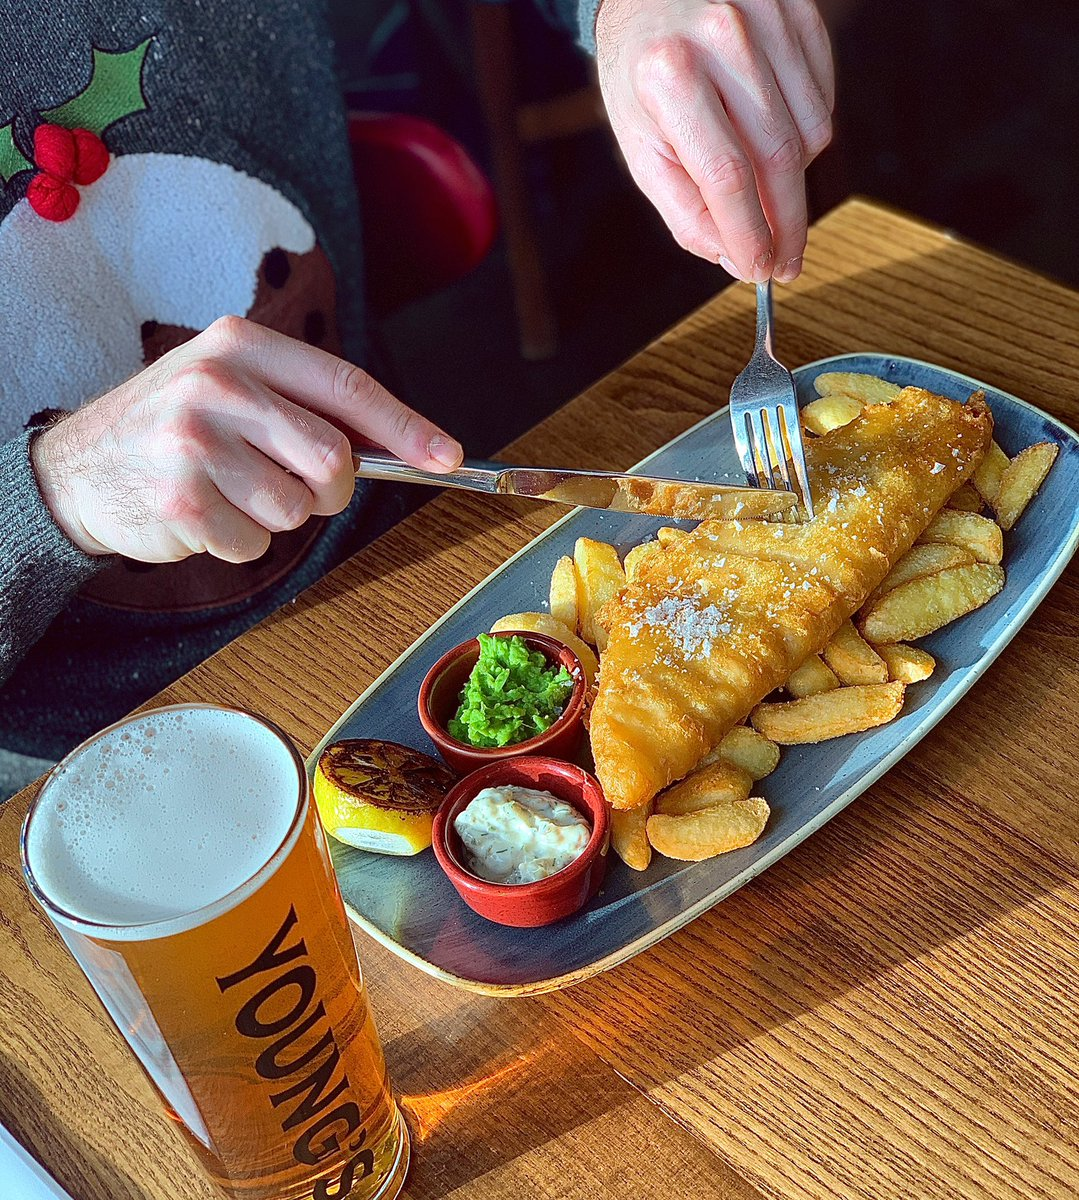 FISH FRIDAY 🐟   -Youngs beer battered North Atlantic Cod, triple cooked chips, crushed peas & seaweed tartare.  Book in today to indulge in a spectacular fish dish this Friday.  Don't forget it's Christmas Jumper Day! We want to see you in the most festive jumper you can find!🎄 https://t.co/AYnNuFxpwe